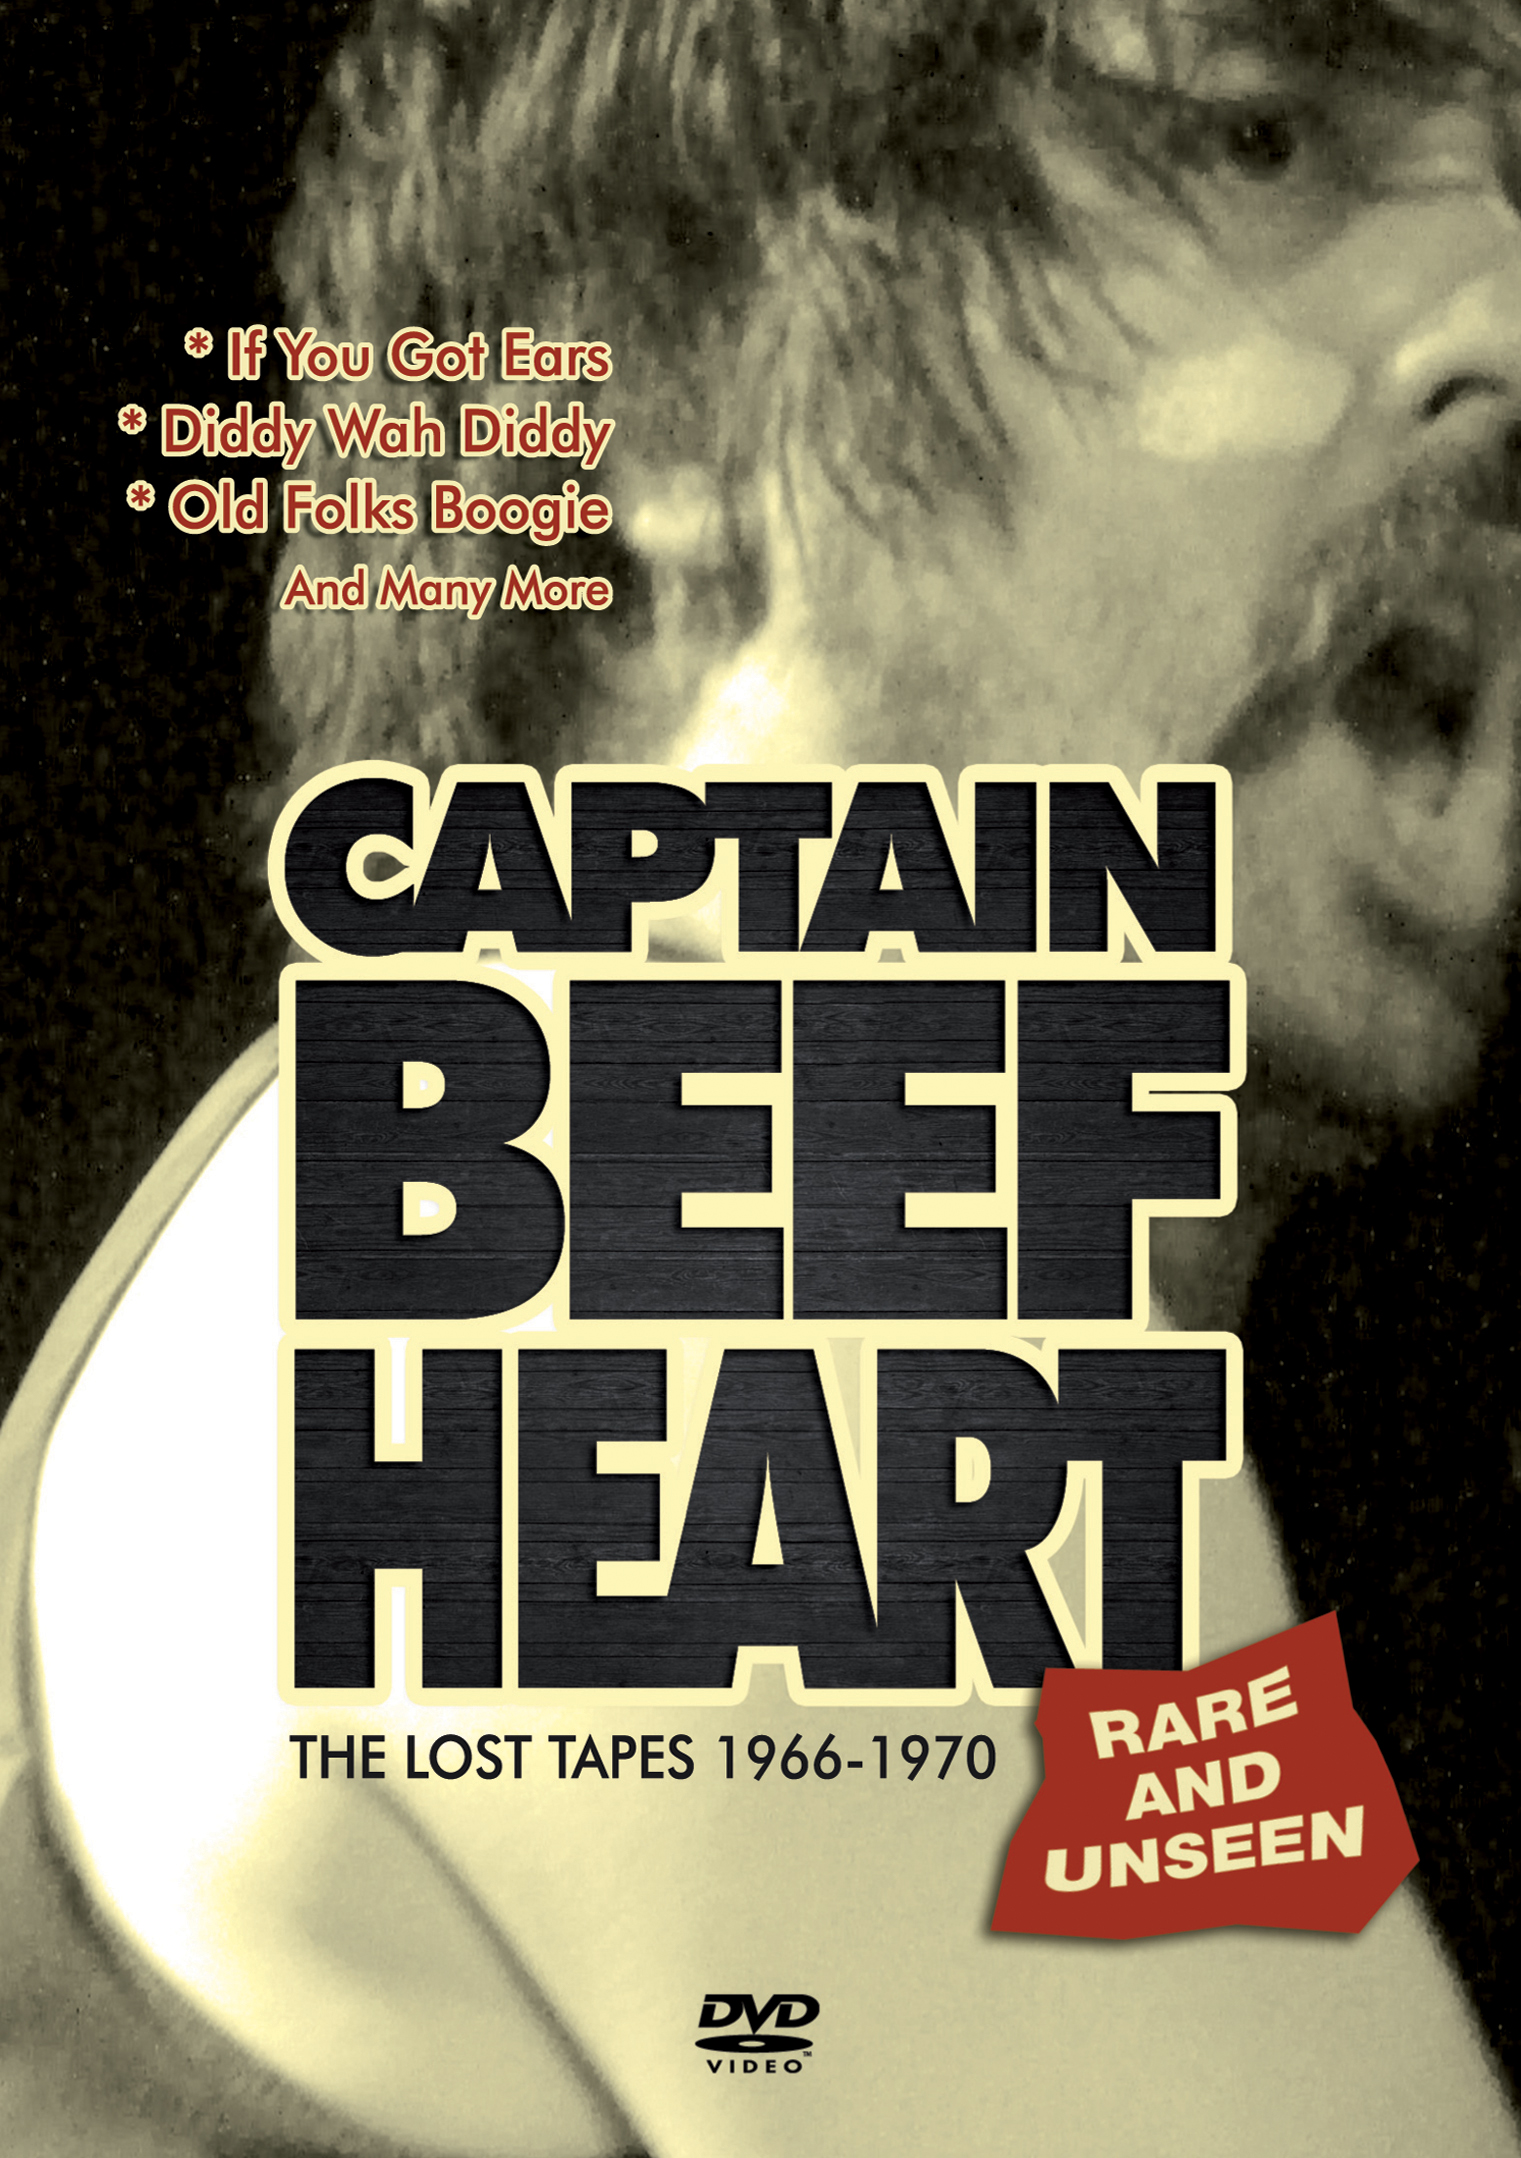 Captain Beefheart: The Lost Tapes 1966-1970